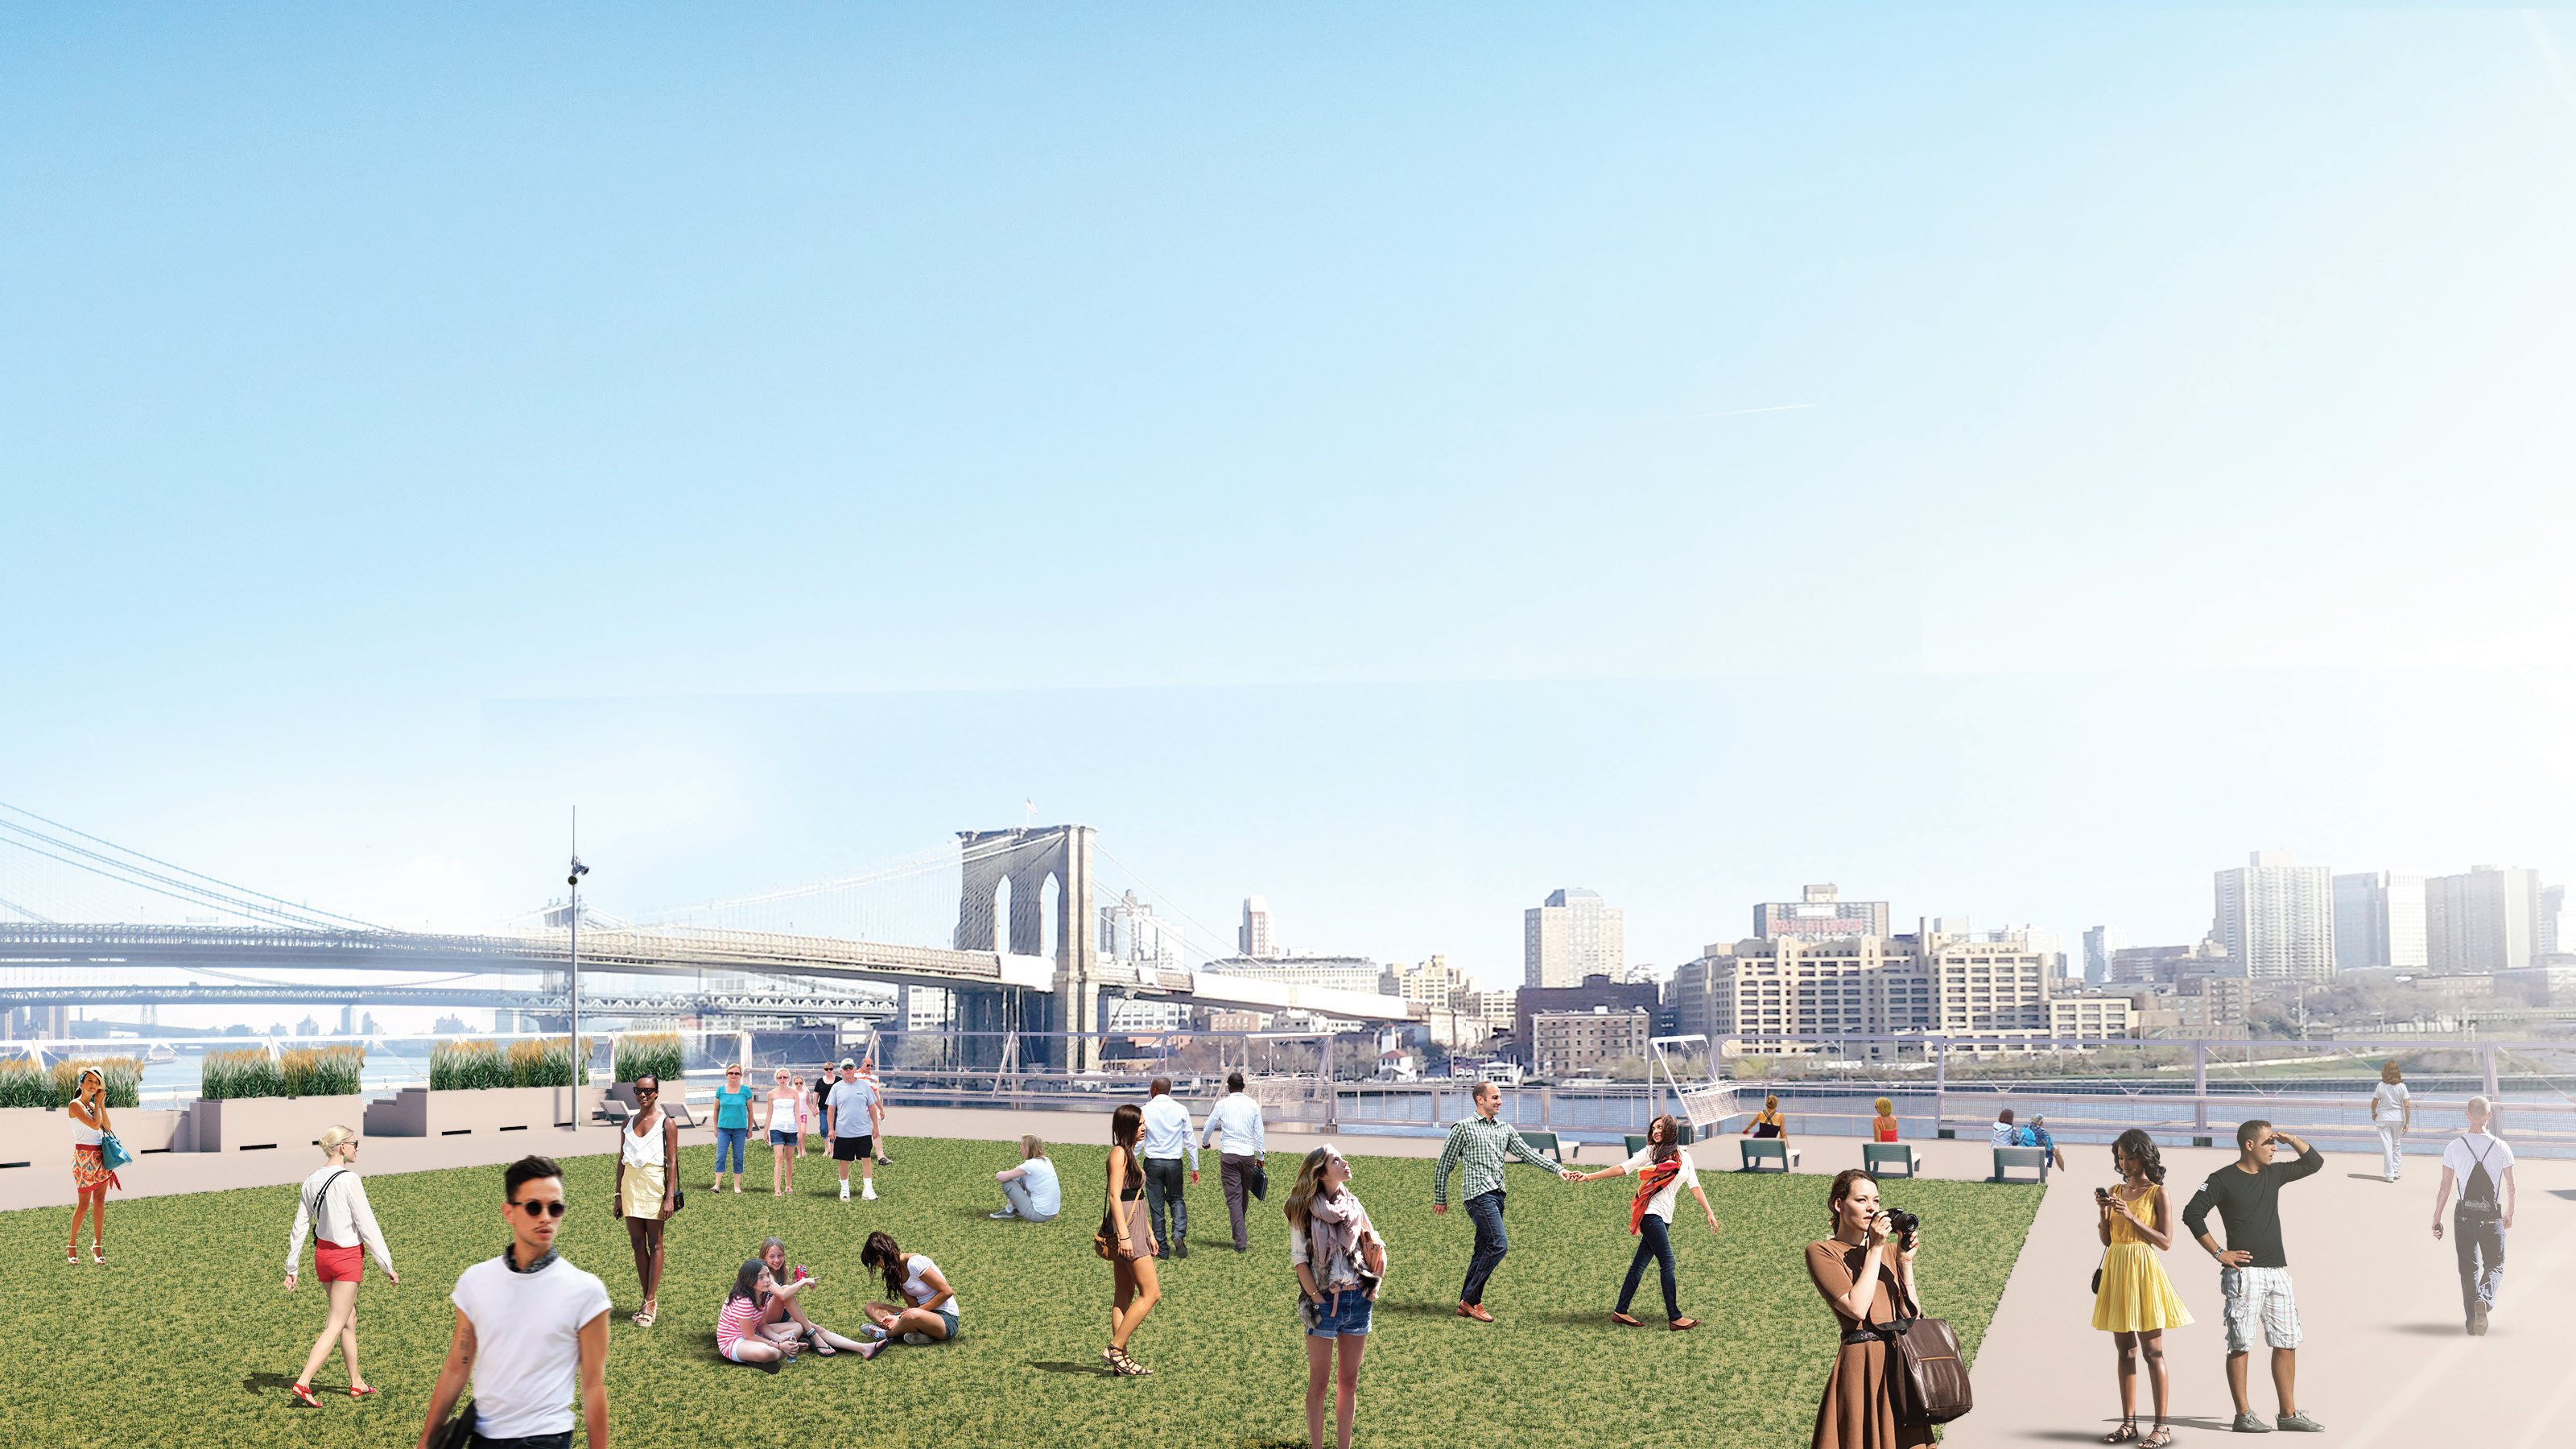 Rendering of the view from the roof of the new Pier 17